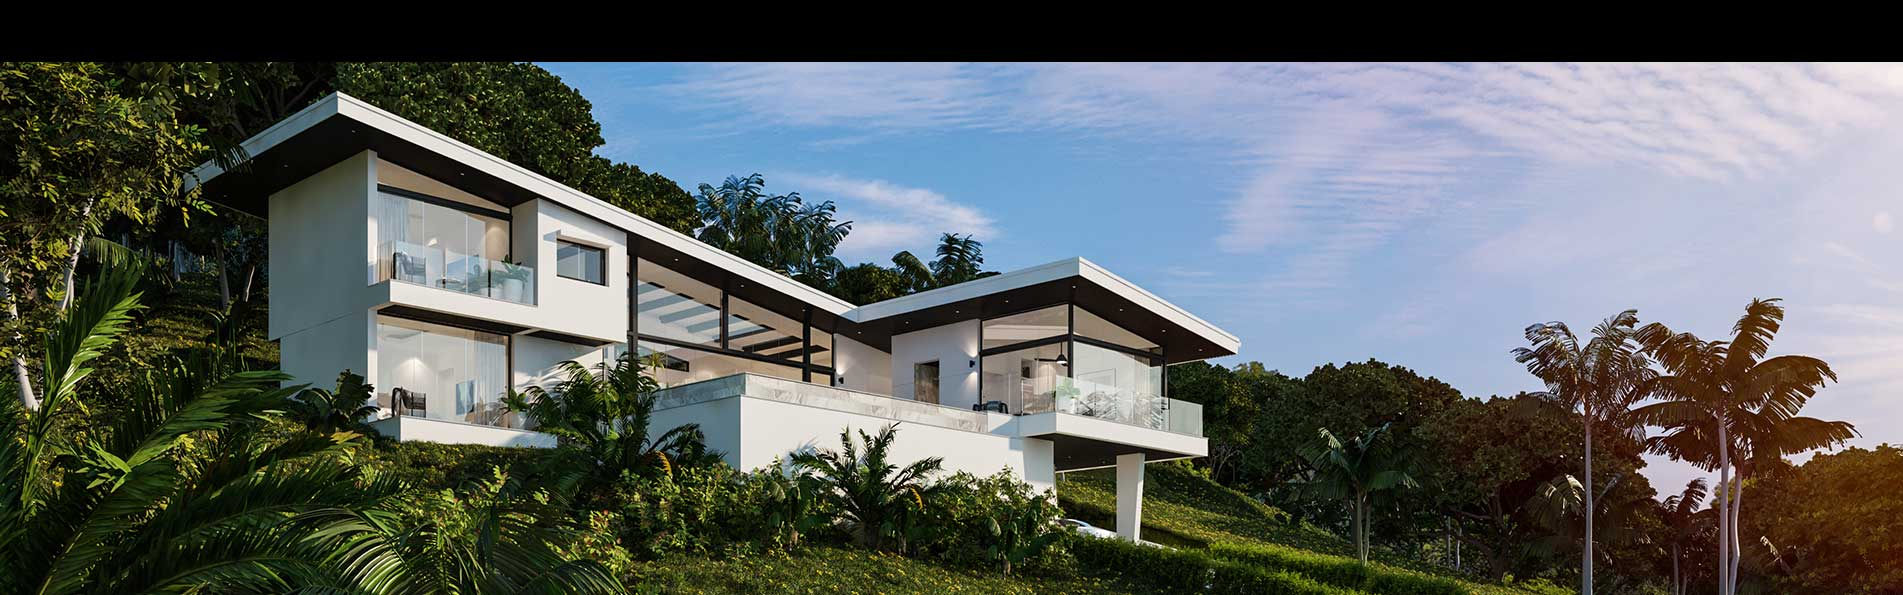 Computer generated image of luxury home in Koh Samui, Thailand.